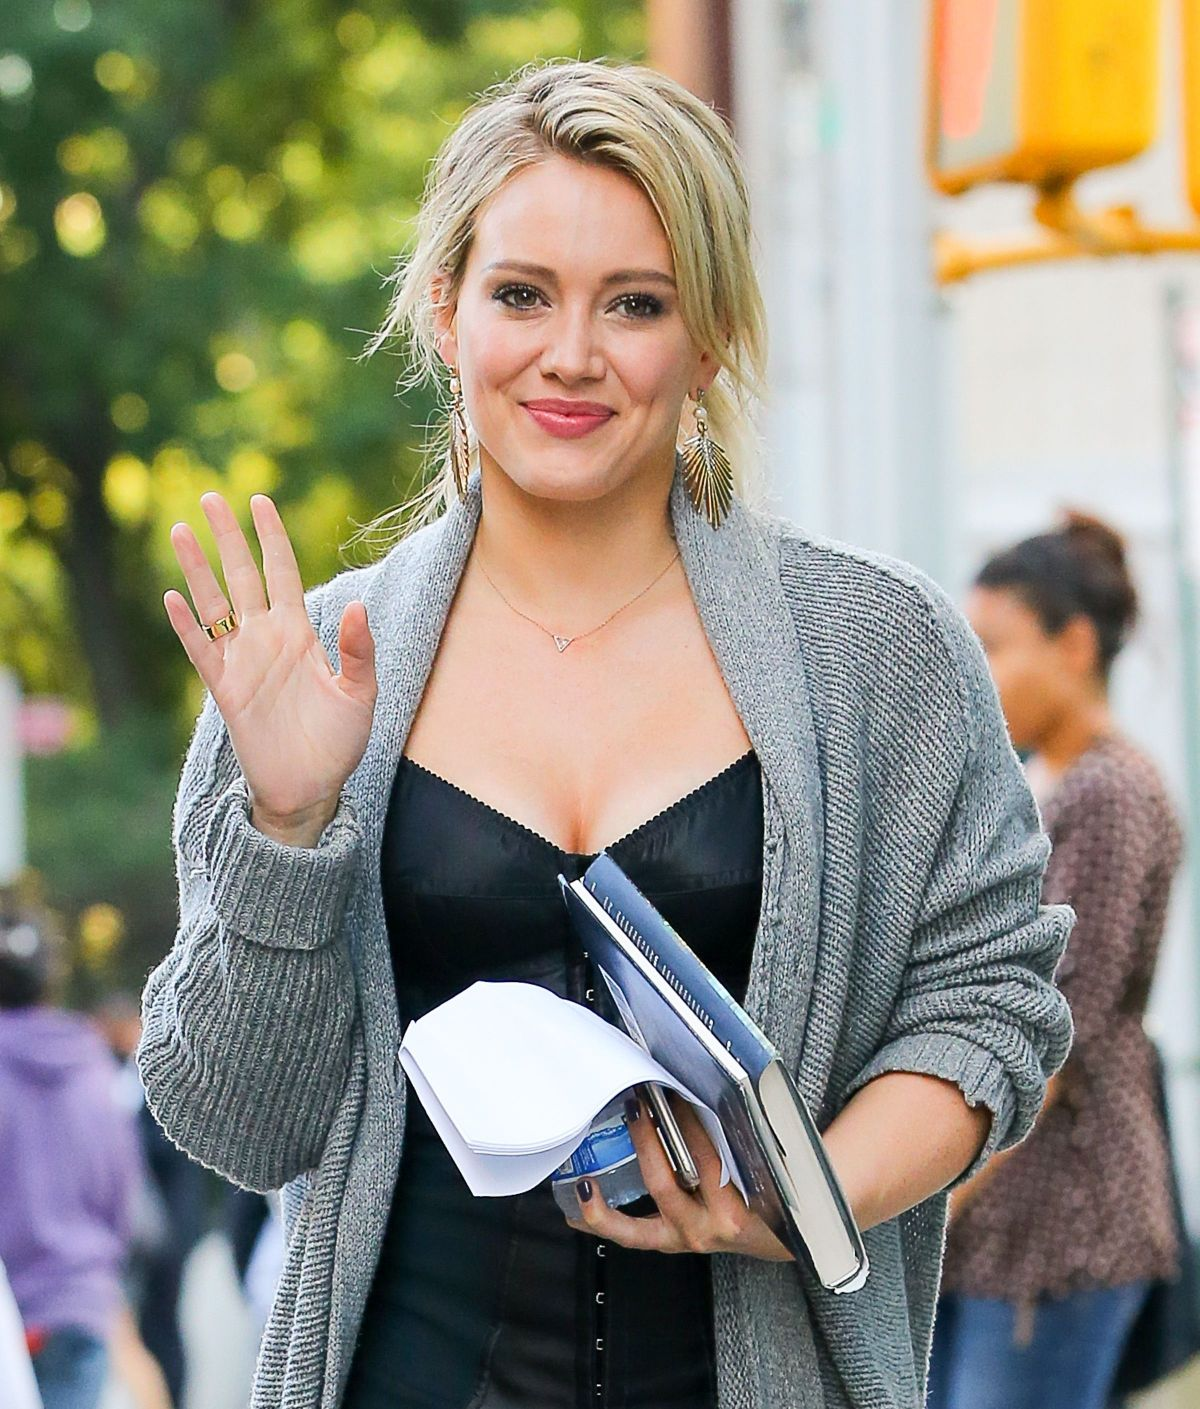 hilary duff - photo #16